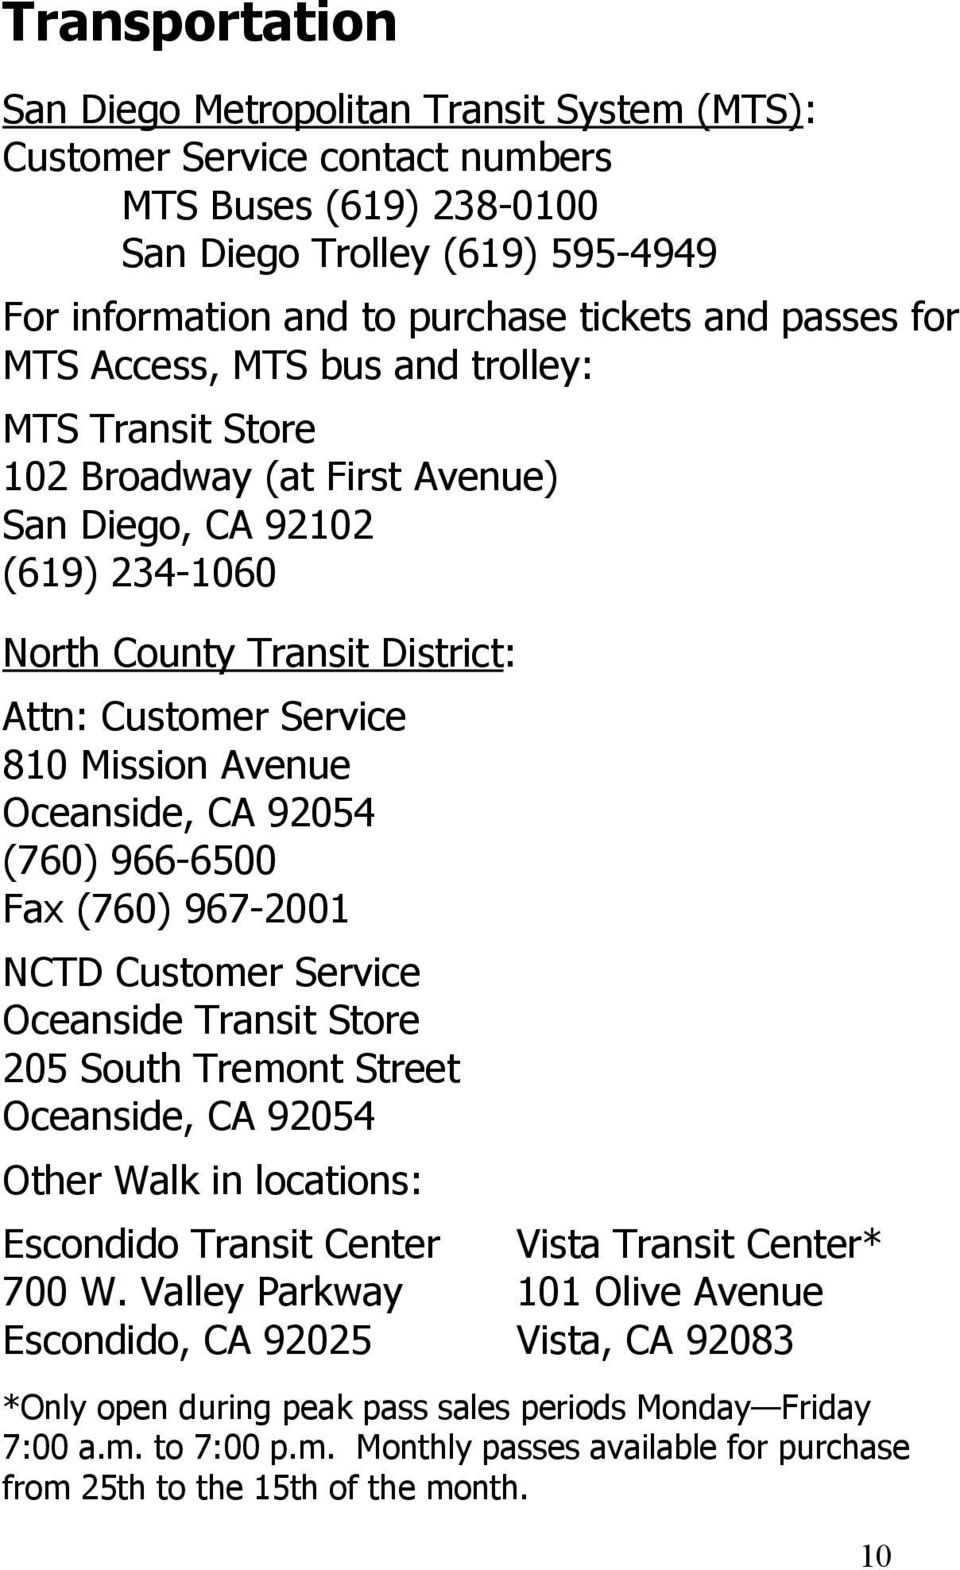 Avenue Oceanside, CA 92054 (760) 966-6500 Fax (760) 967-2001 NCTD Customer Service Oceanside Transit Store 205 South Tremont Street Oceanside, CA 92054 Other Walk in locations: Escondido Transit